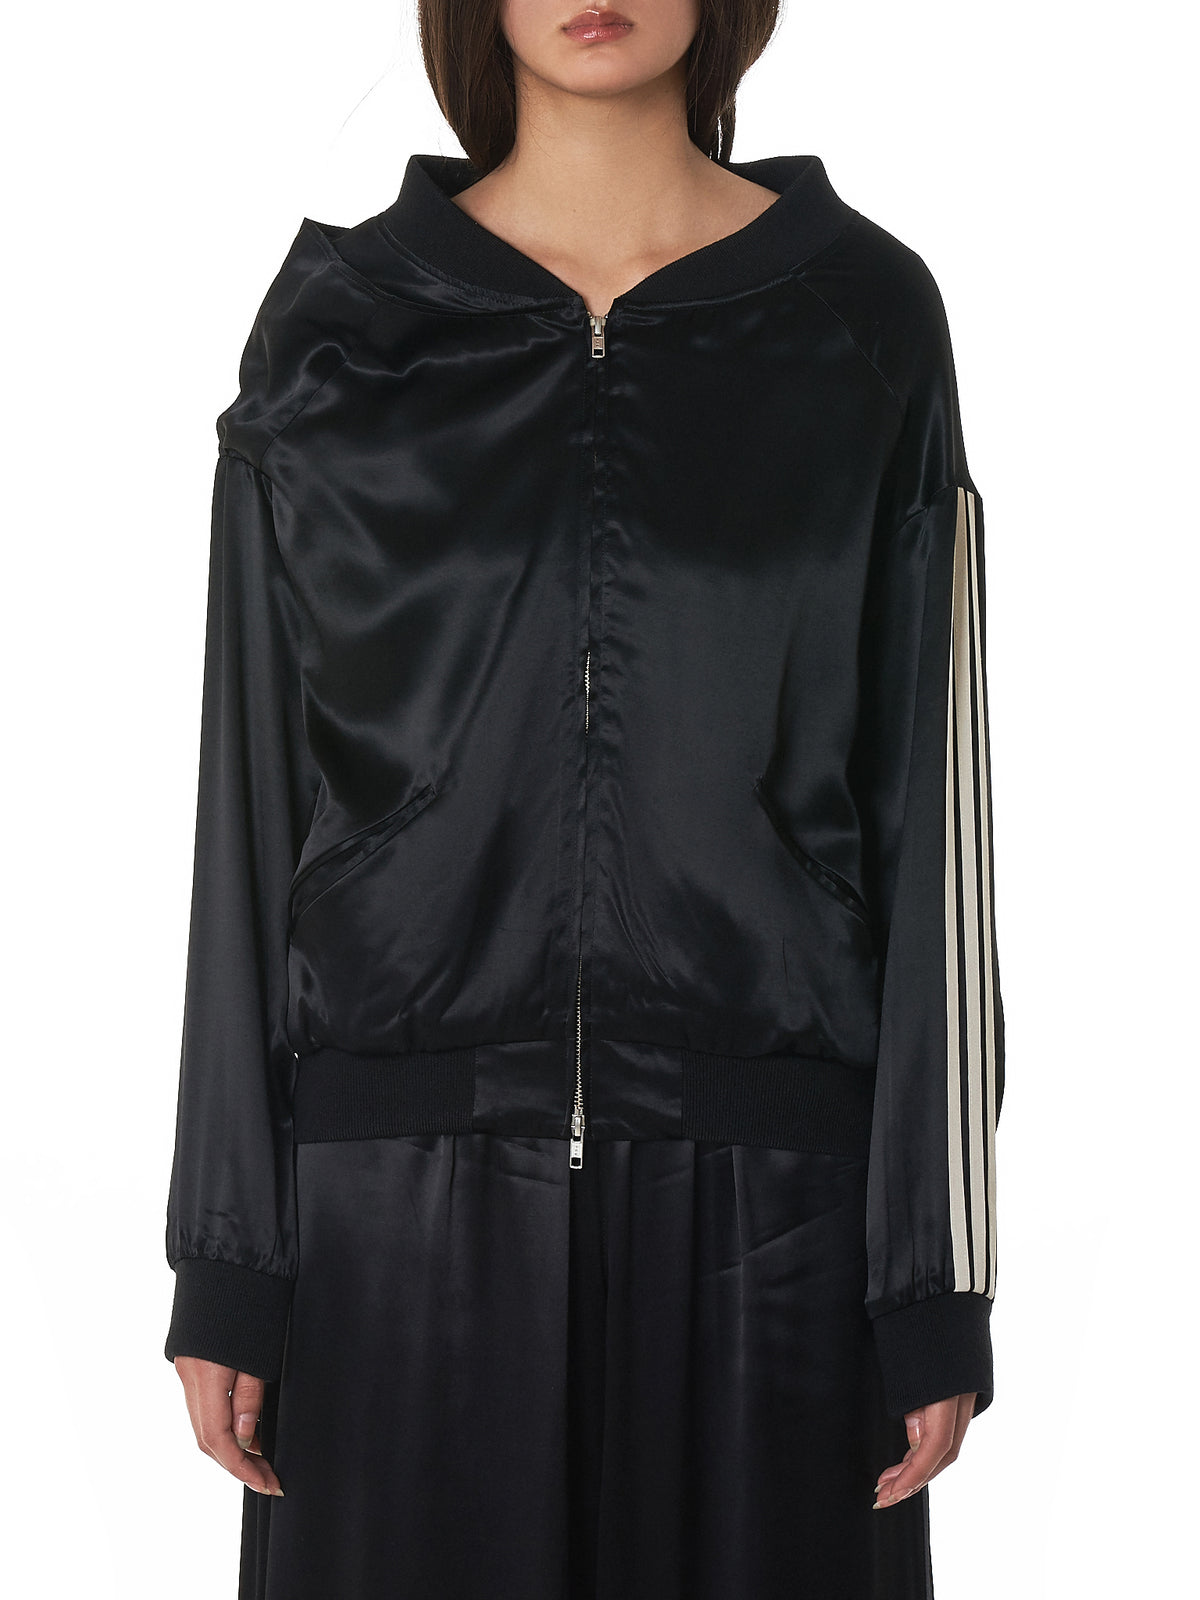 Lux Track Jacket (DP0741-BLACK-CHAMPAGNE)